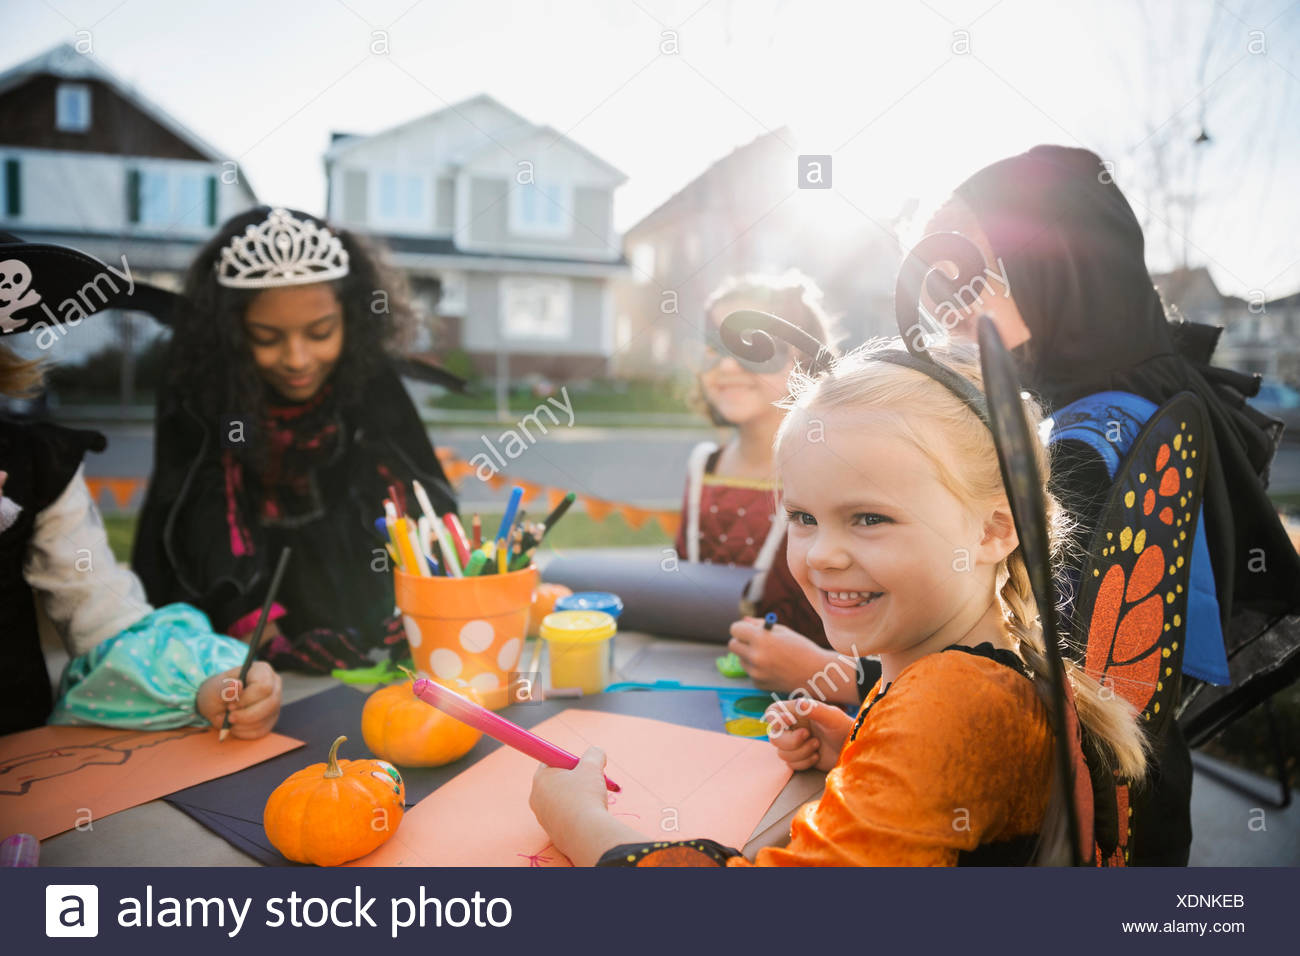 Kids in Halloween costumes doing crafts front yard - Stock Image